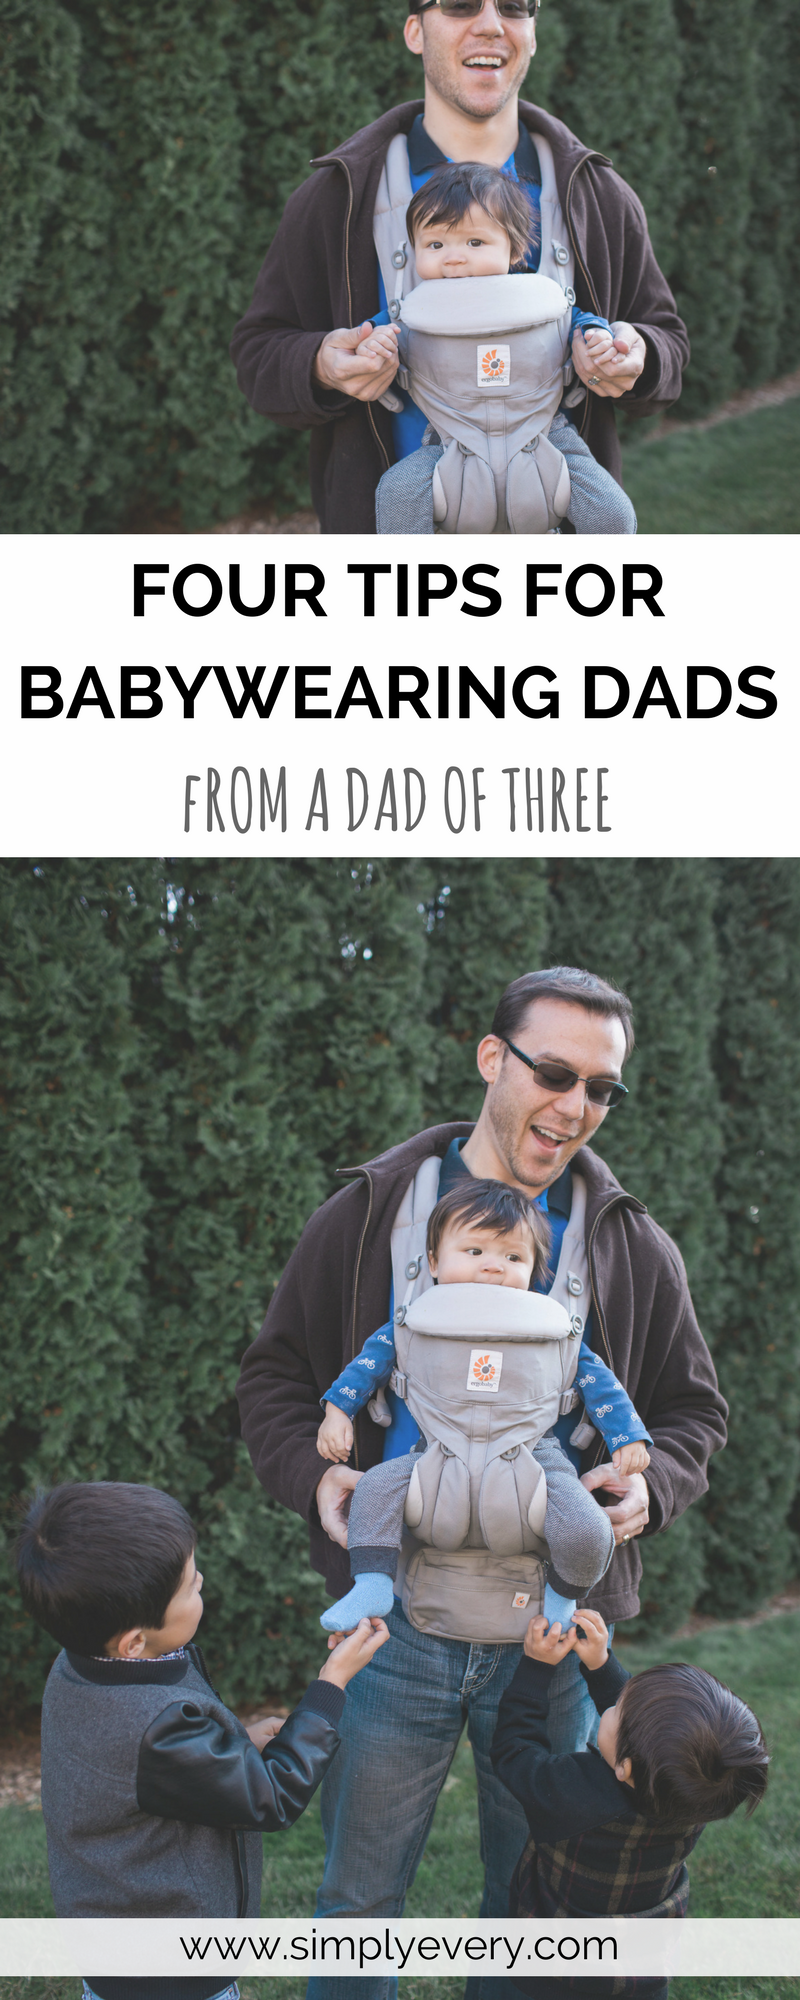 Four Tips for Babywearing Dads